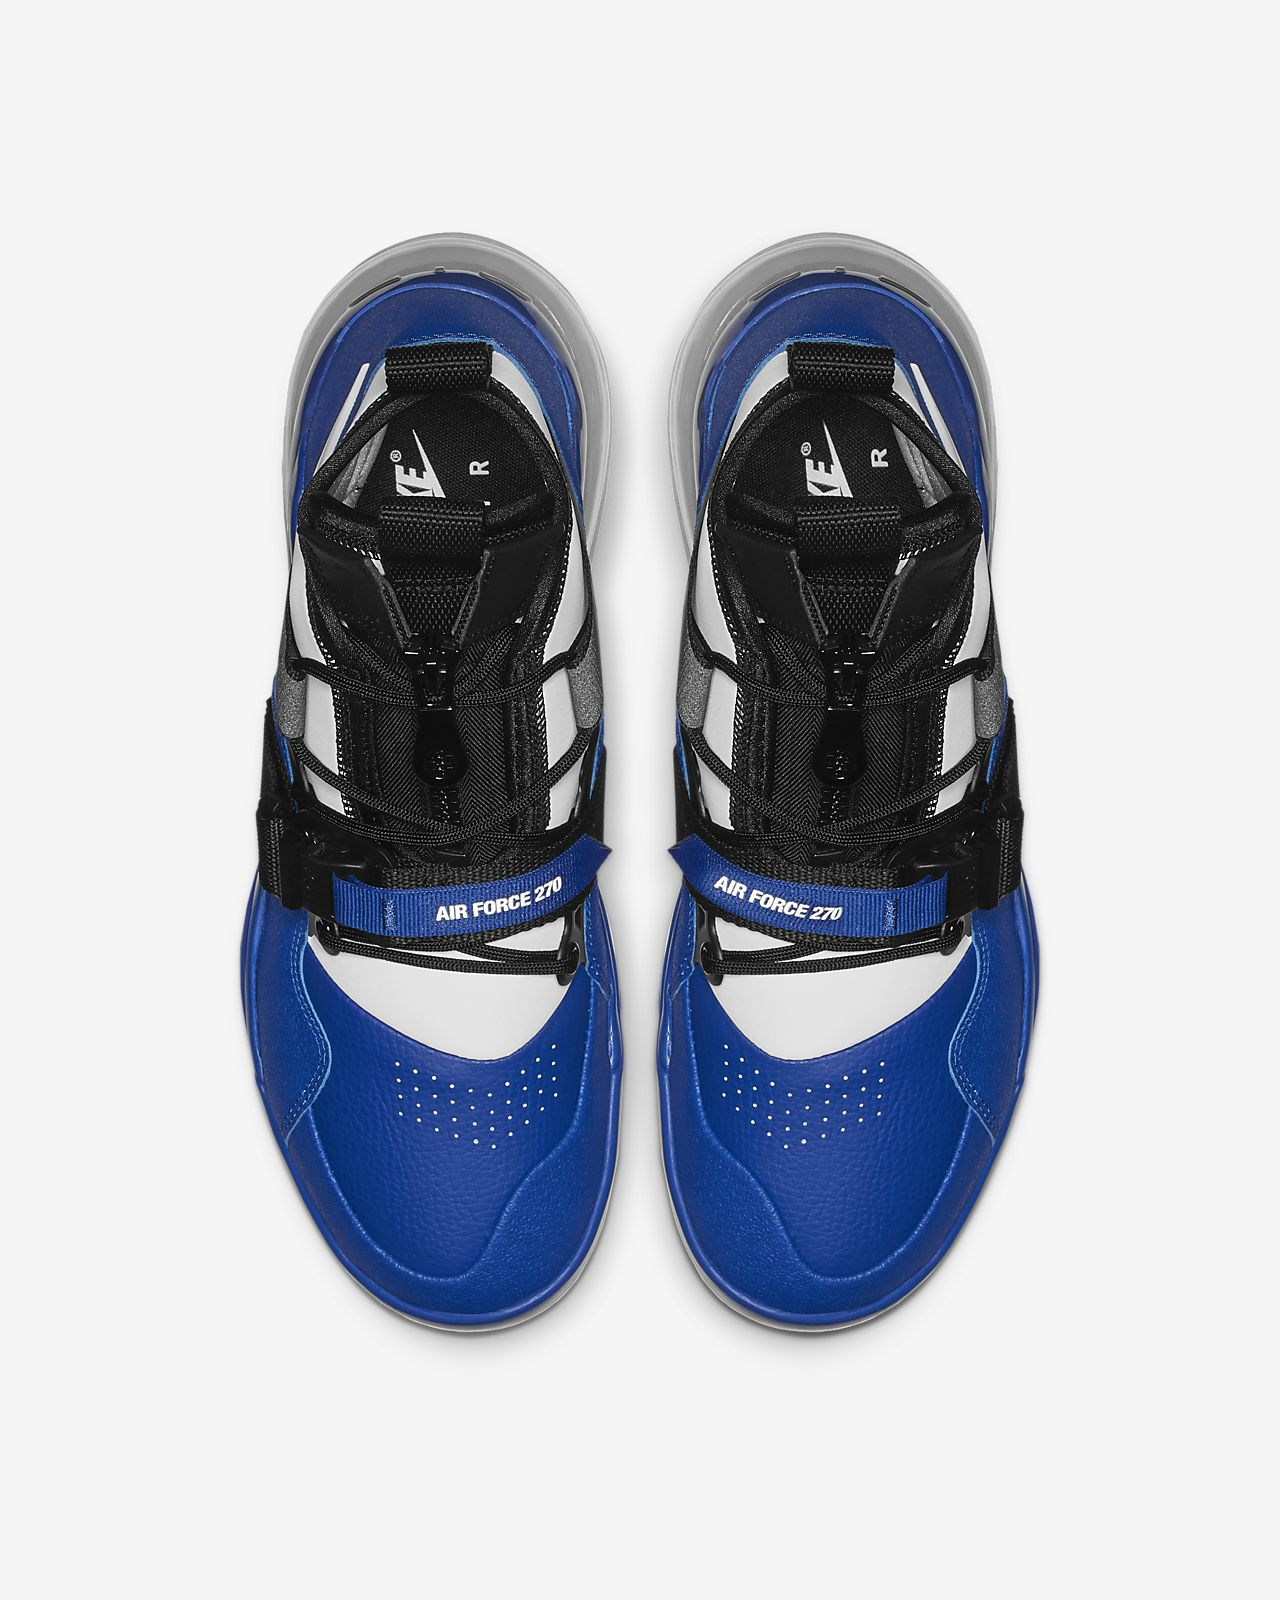 detailed pictures 9196d 9eaf9 ... Nike Air Force 270 Utility Men s Shoe